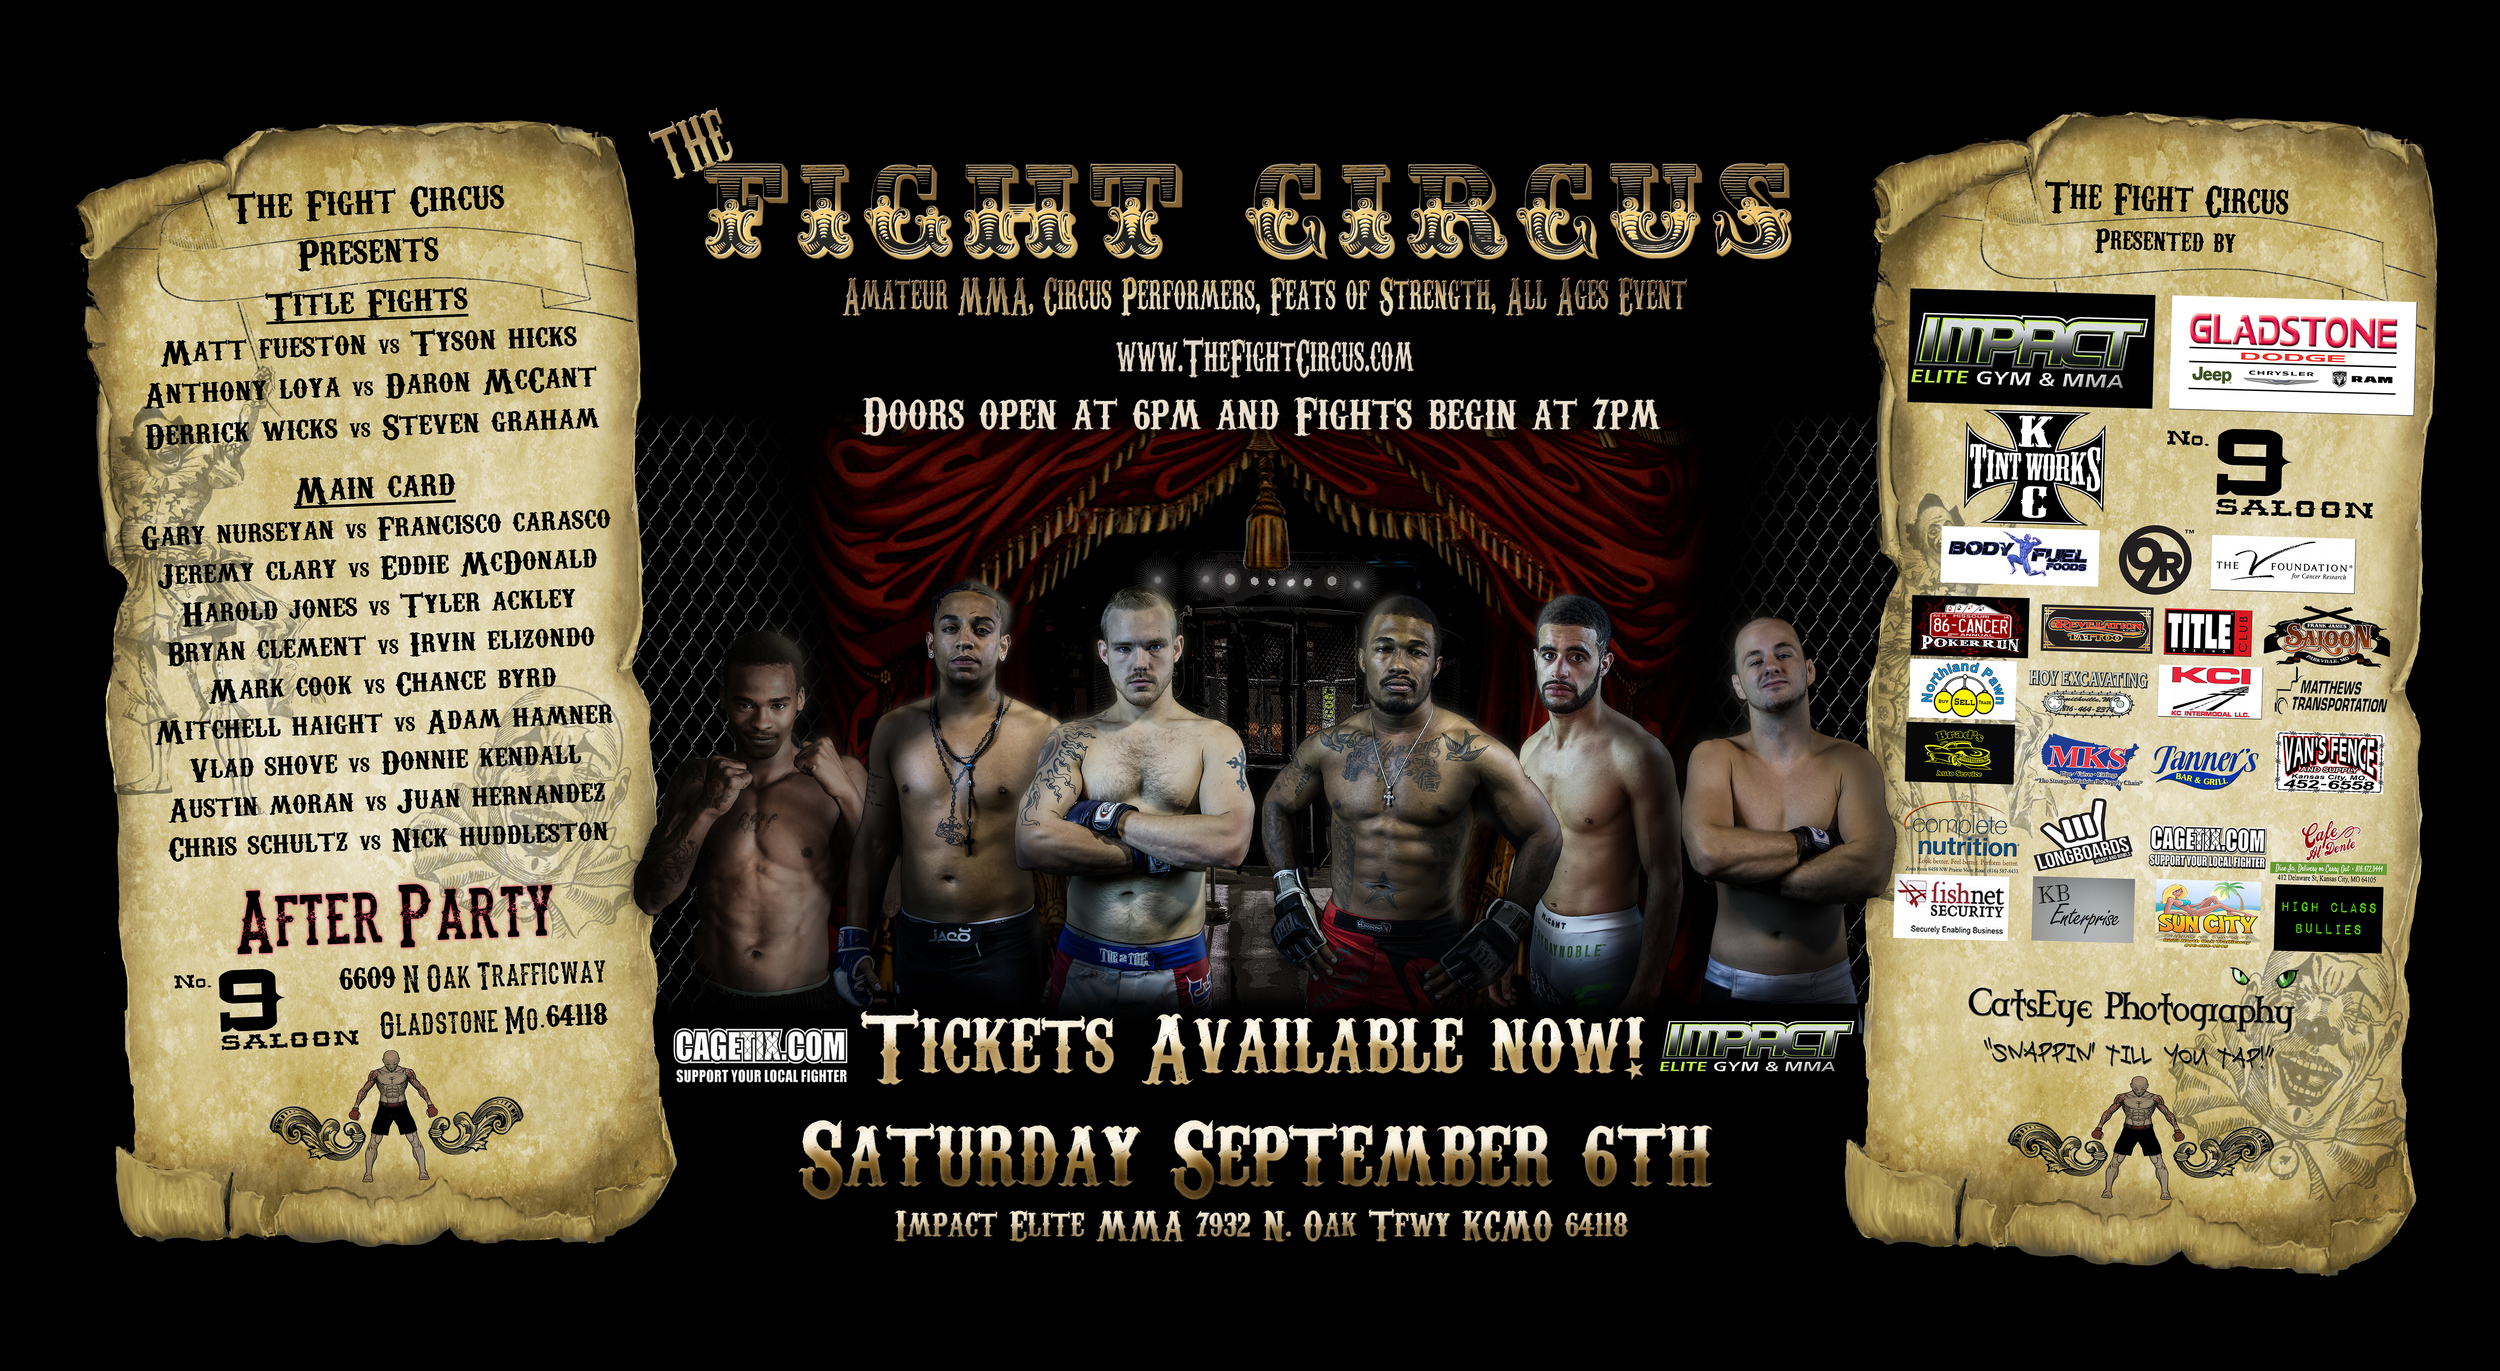 FIGHT CIRCUS POSTER.jpg